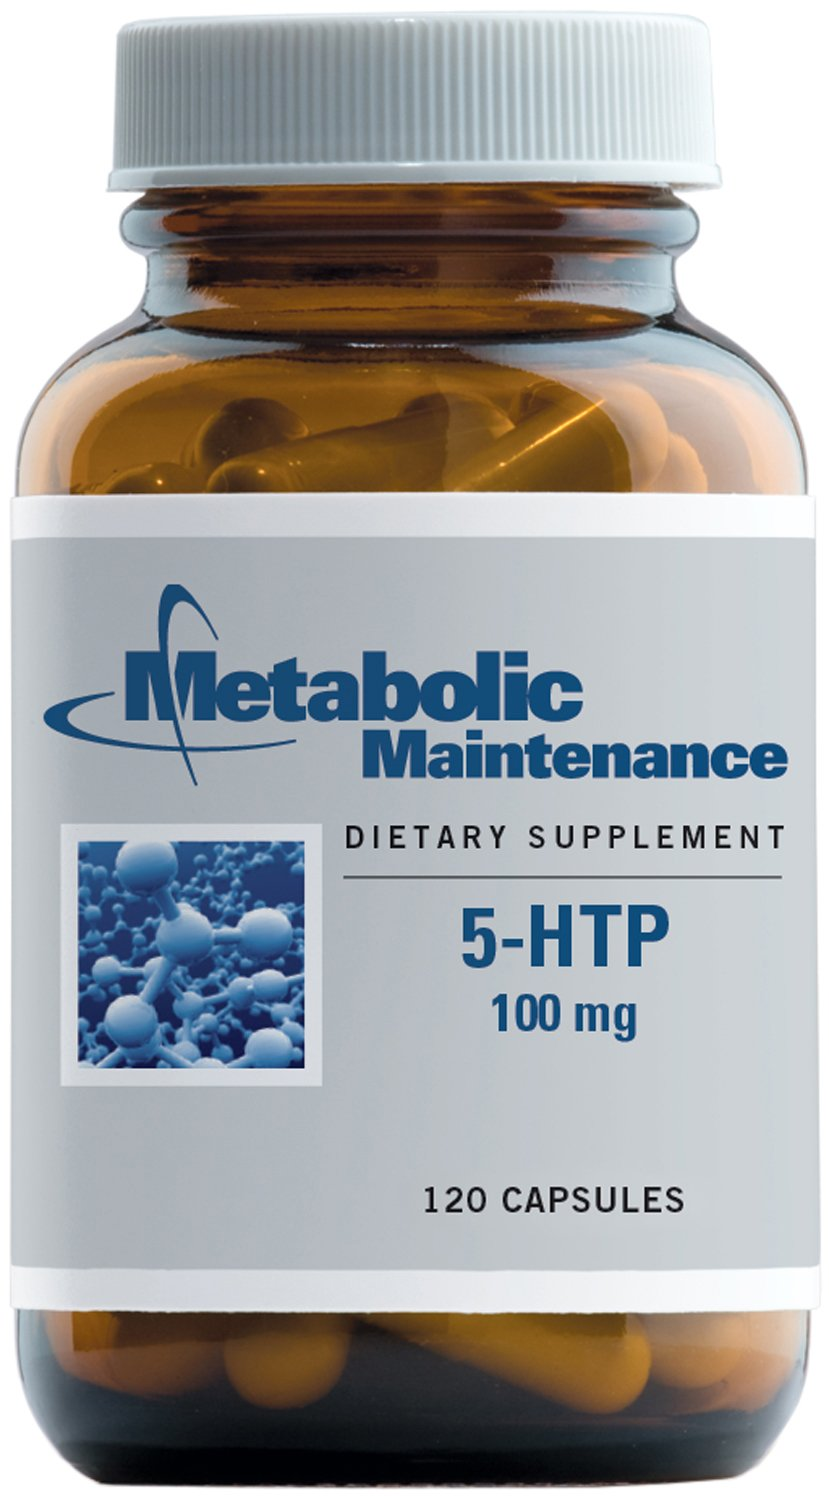 Metabolic Maintenance - 5-HTP - 100 mg + P-5-P for Mood Support, 120 Capsules